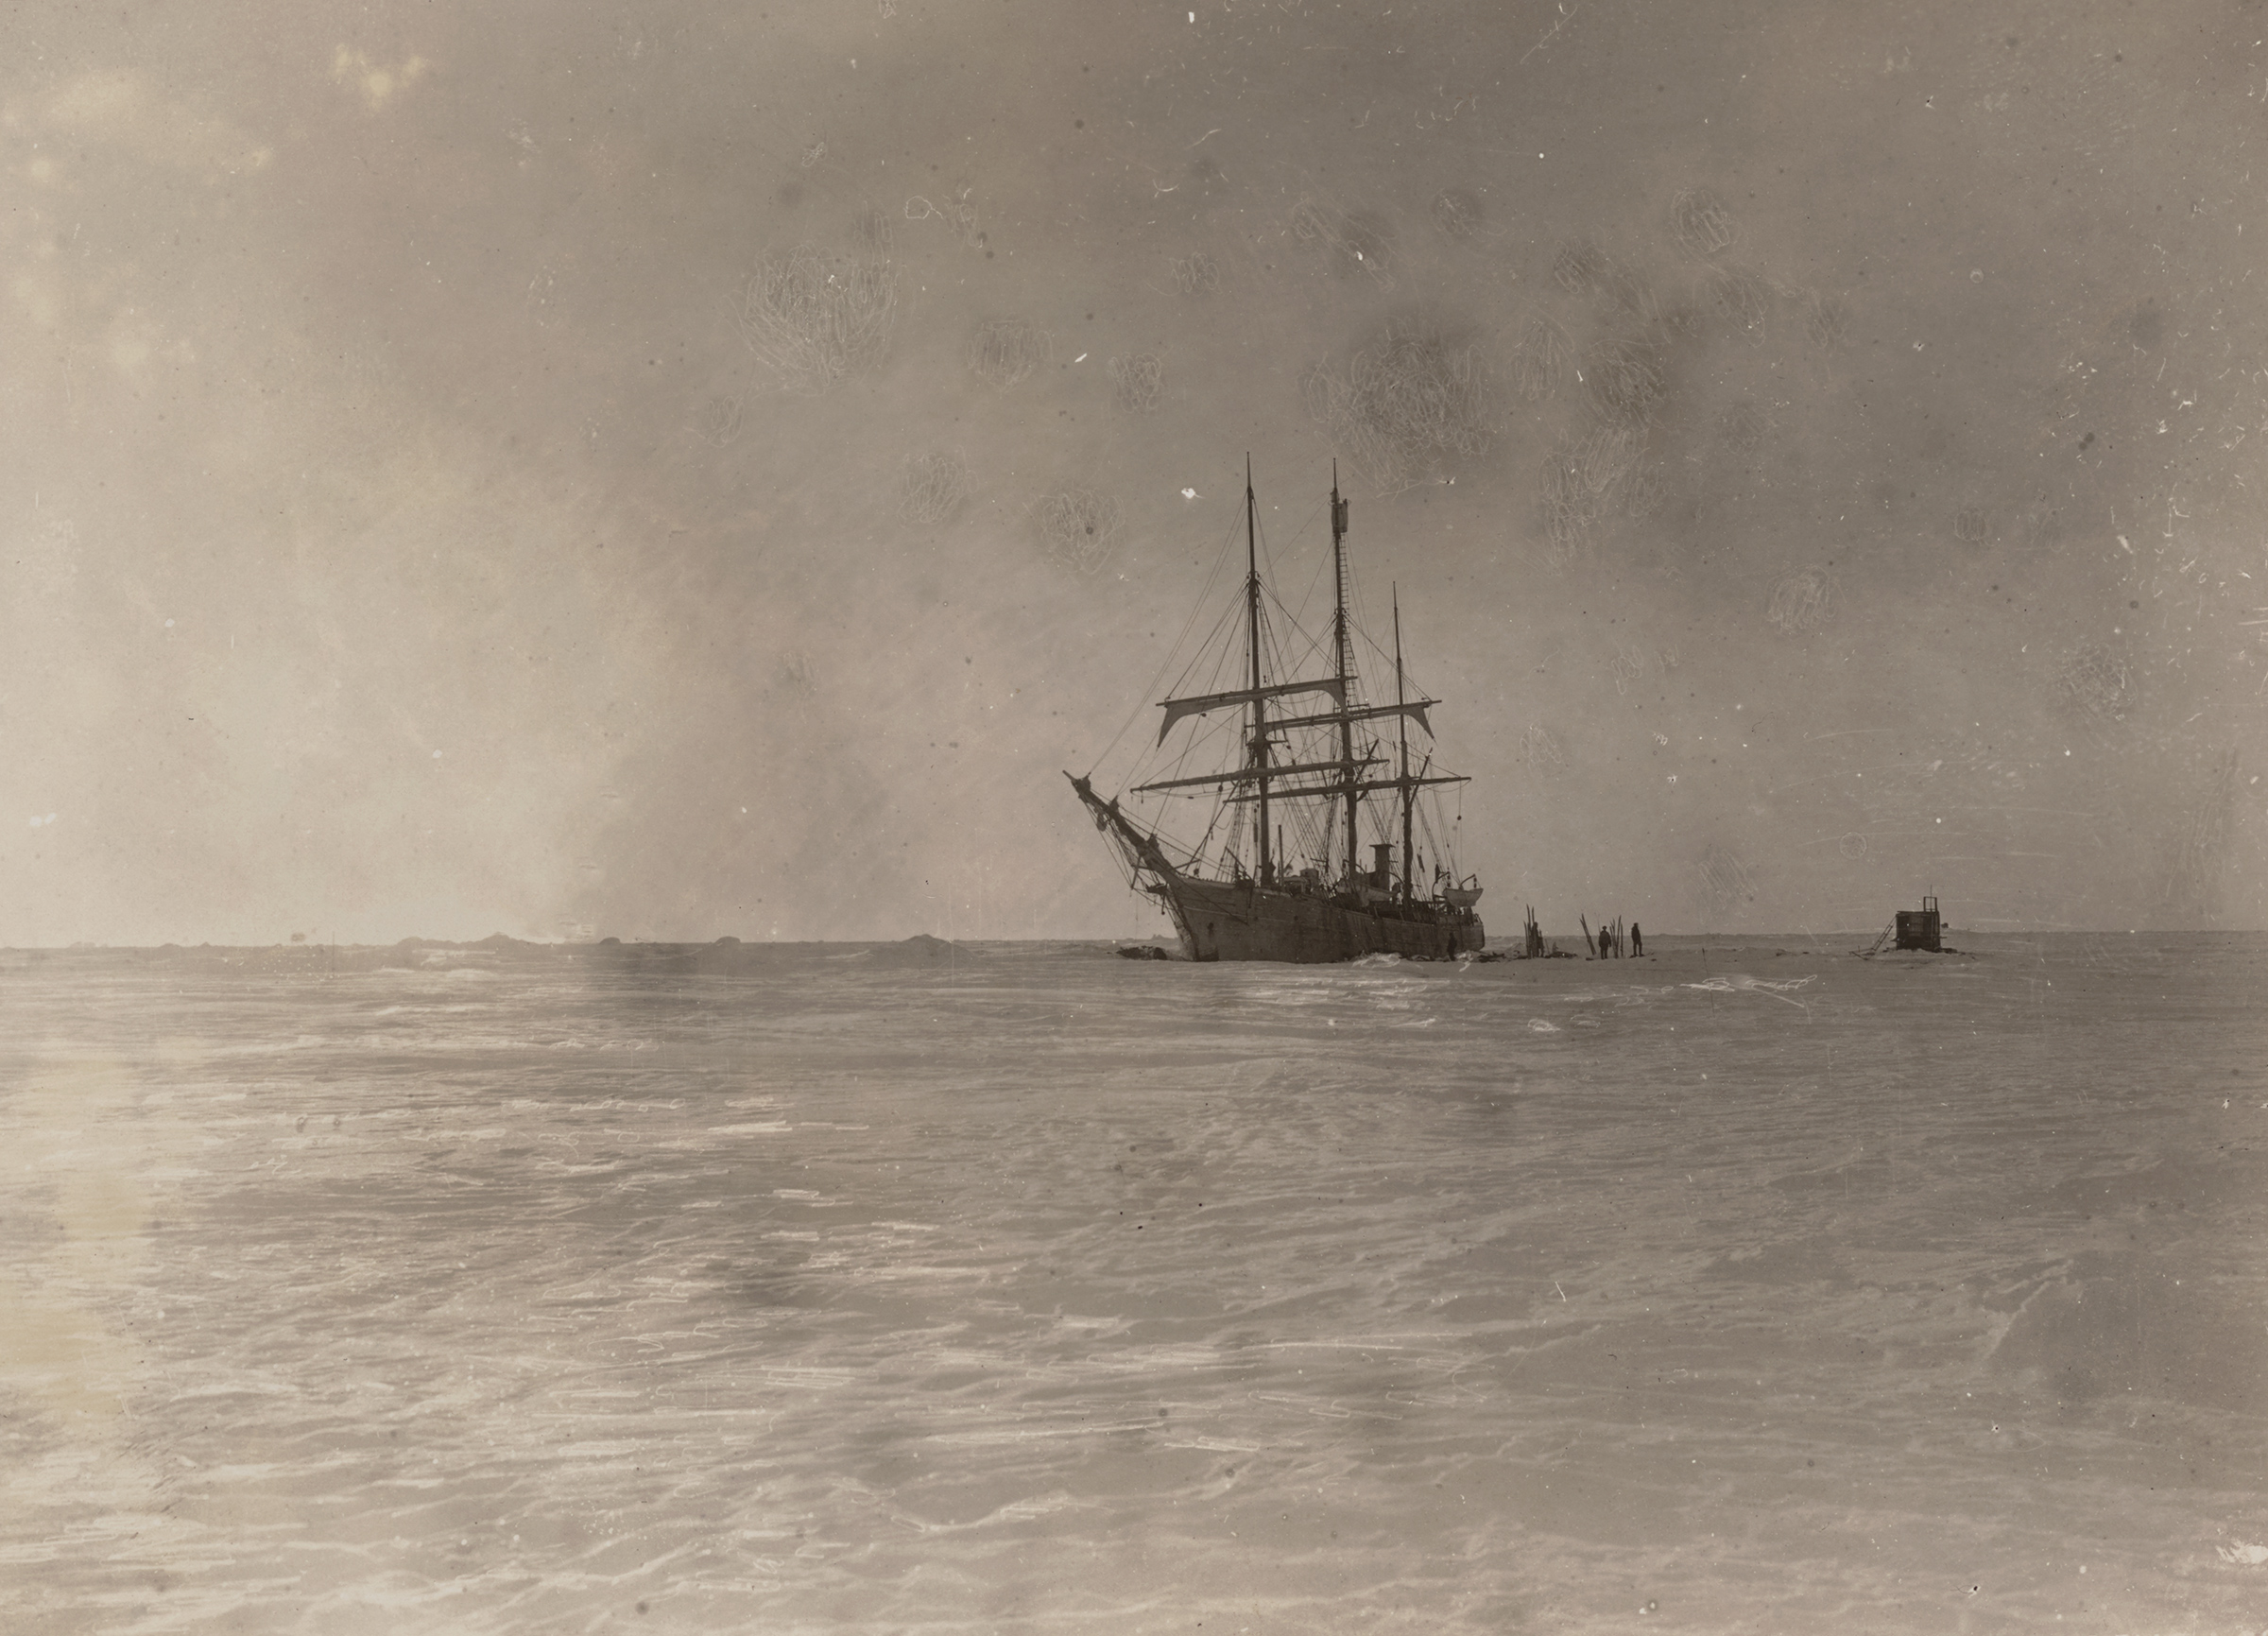 The Belgica, stuck fast in the pack ice of Antarctica's Bellingshausen sea, in 1898. Library of Congress. Frederick A. Cook Society.